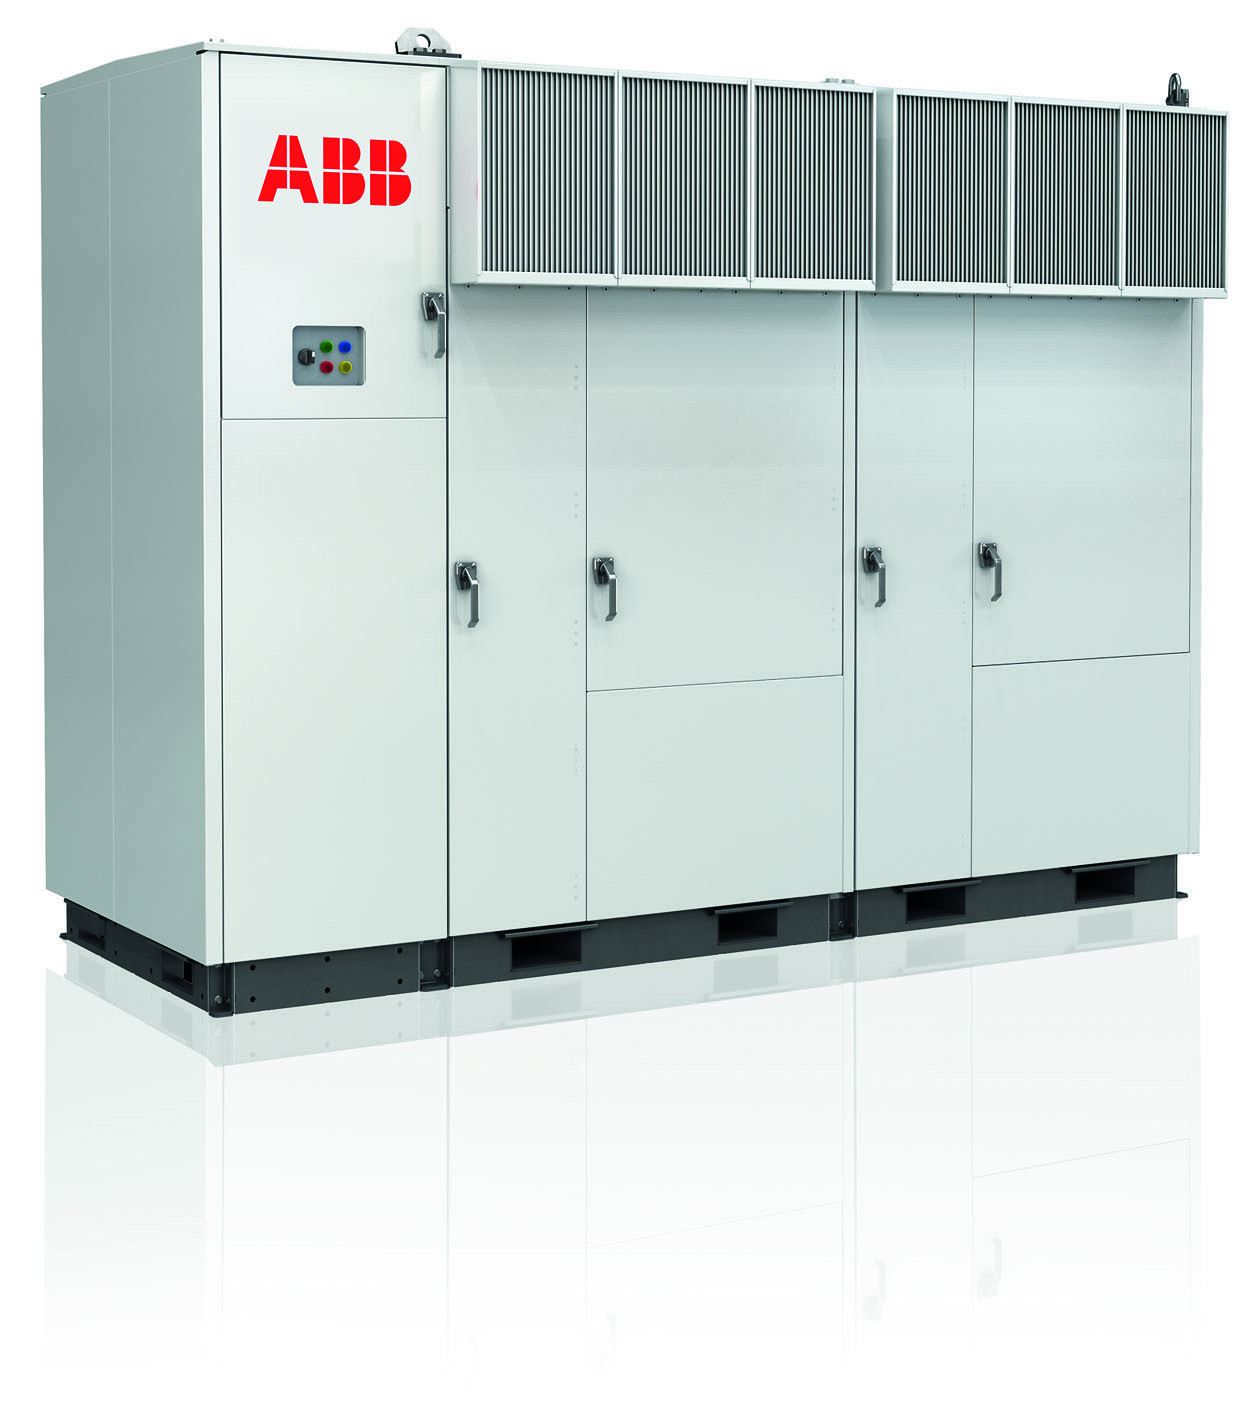 The new factory manufactures ABB's PVS800 central inverter series. Credit: ABB